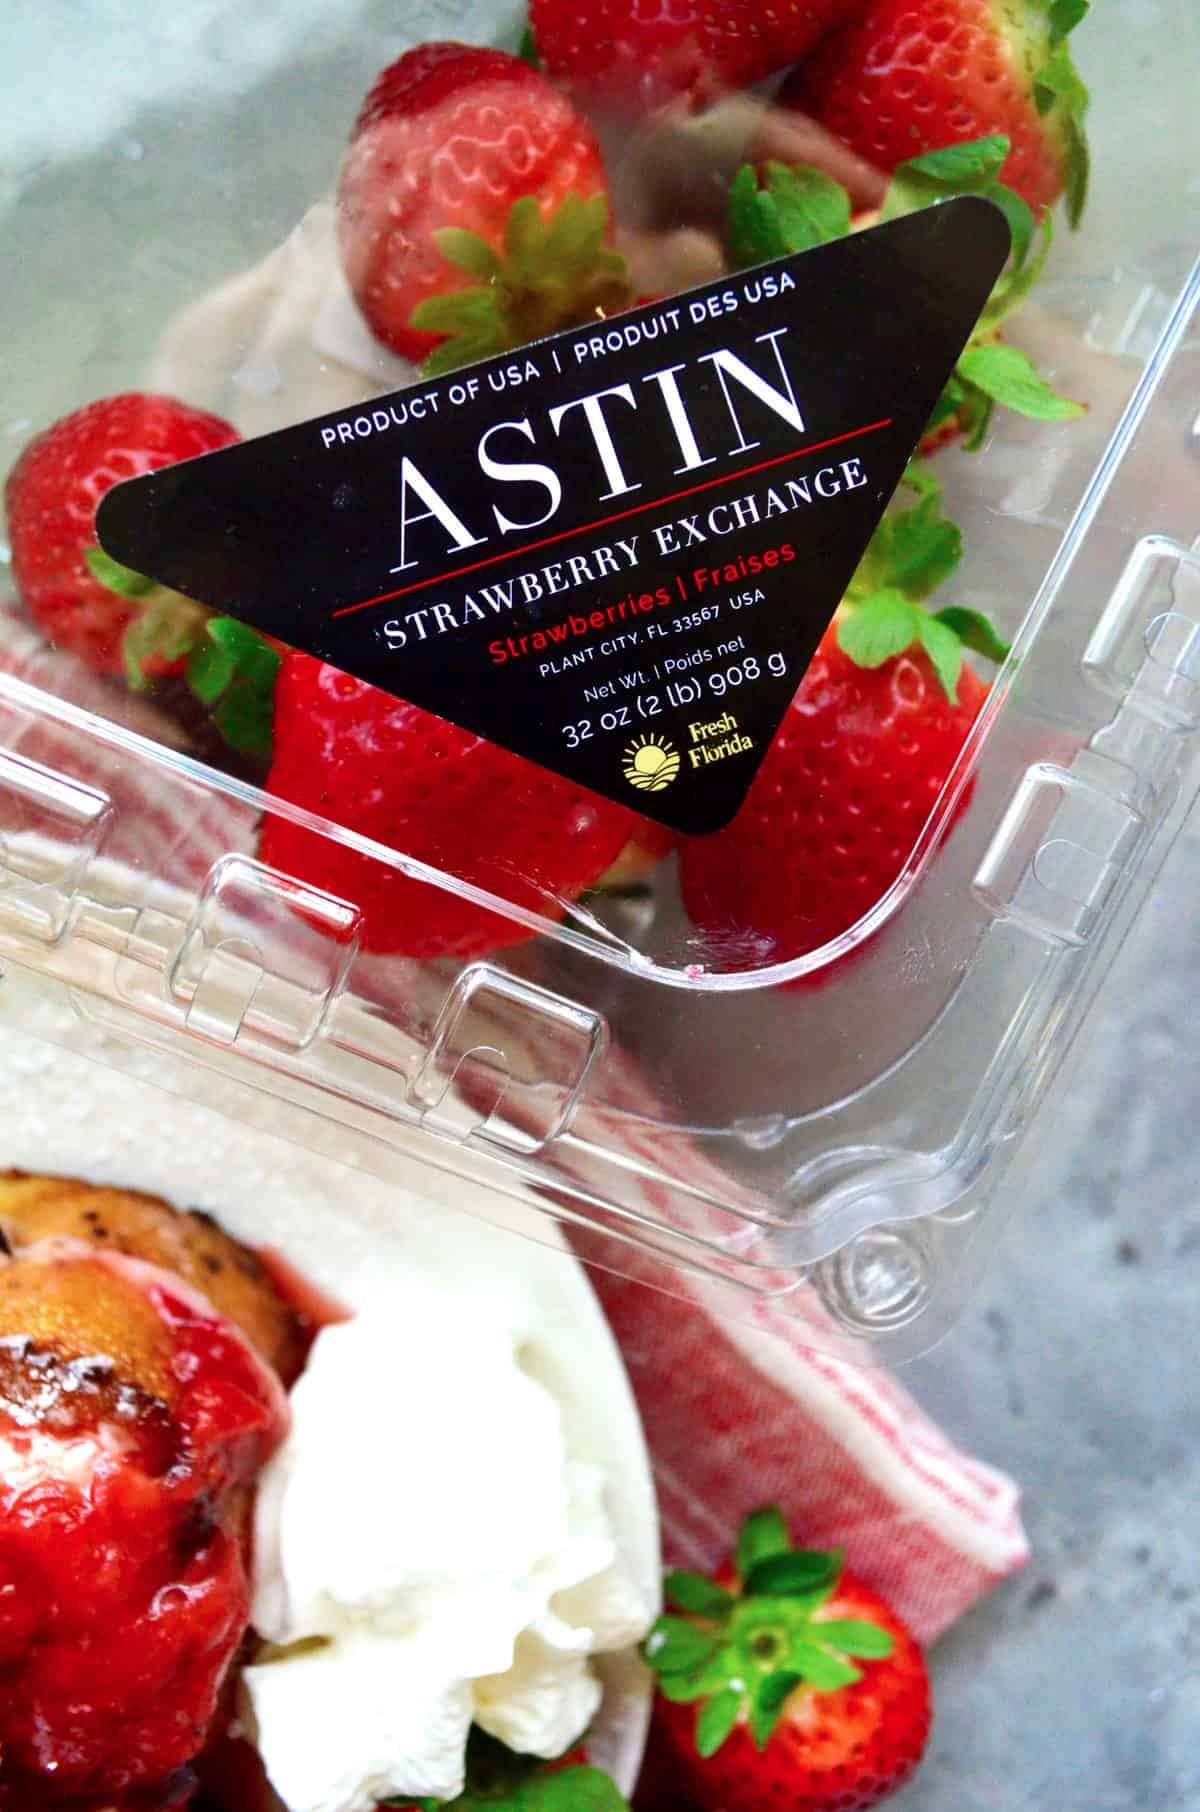 top view of package of Florida Fresh Astin Strawberries.